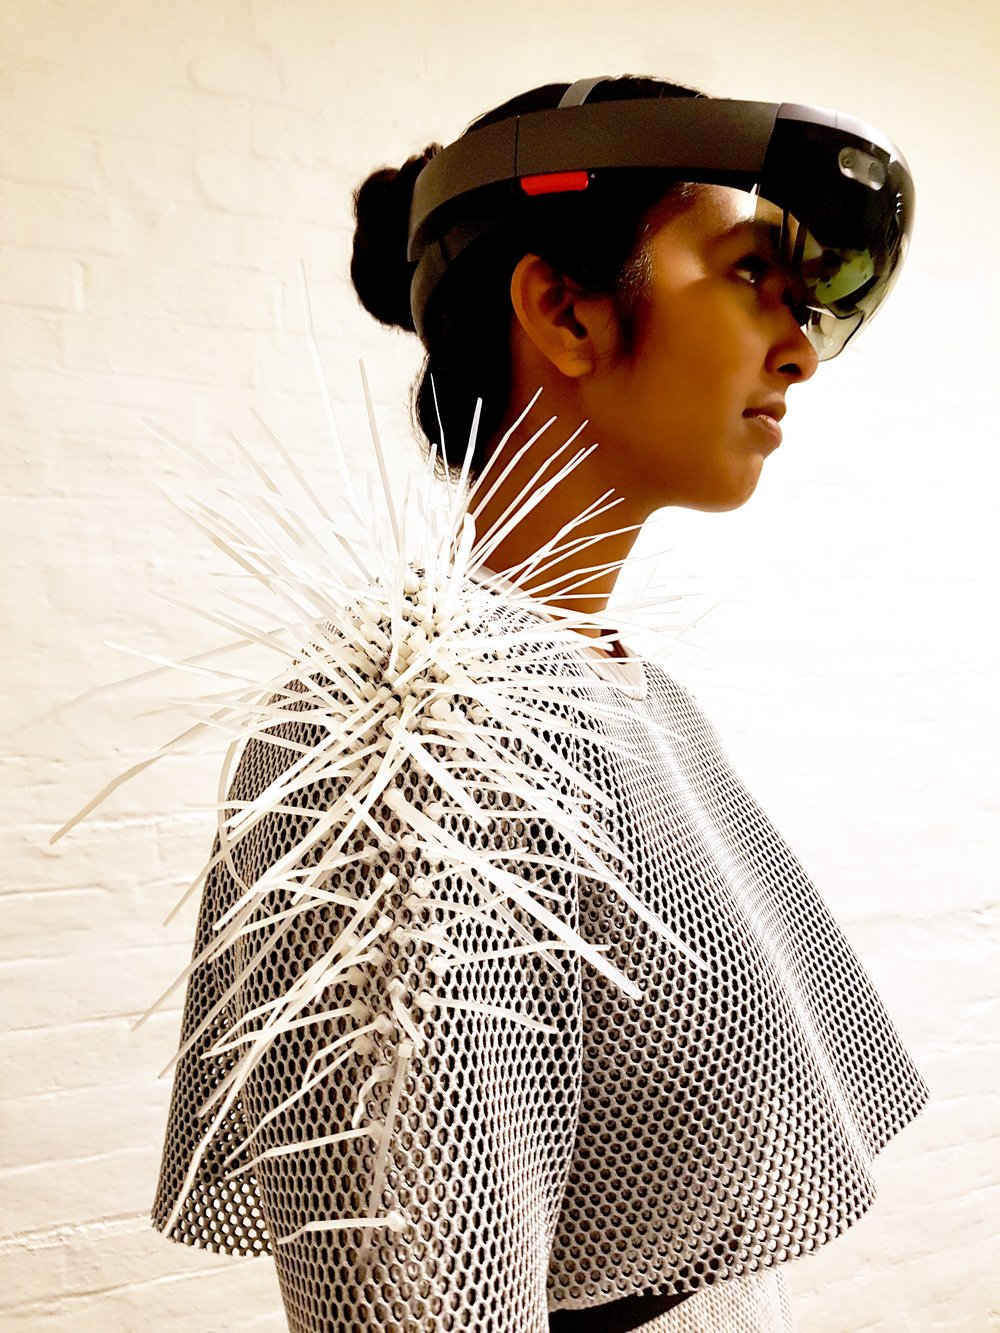 'Mycelium'    Zoe Mahony/Warren Armstrong  -  sARTorial 2017   Wearable technology: Could this be a way of communicating environmental data and sites of distress to a broader audience?   HoloLens, EL wire, arduino, polyester, batteries, computer, large AV screen   Model - Monisha Sami